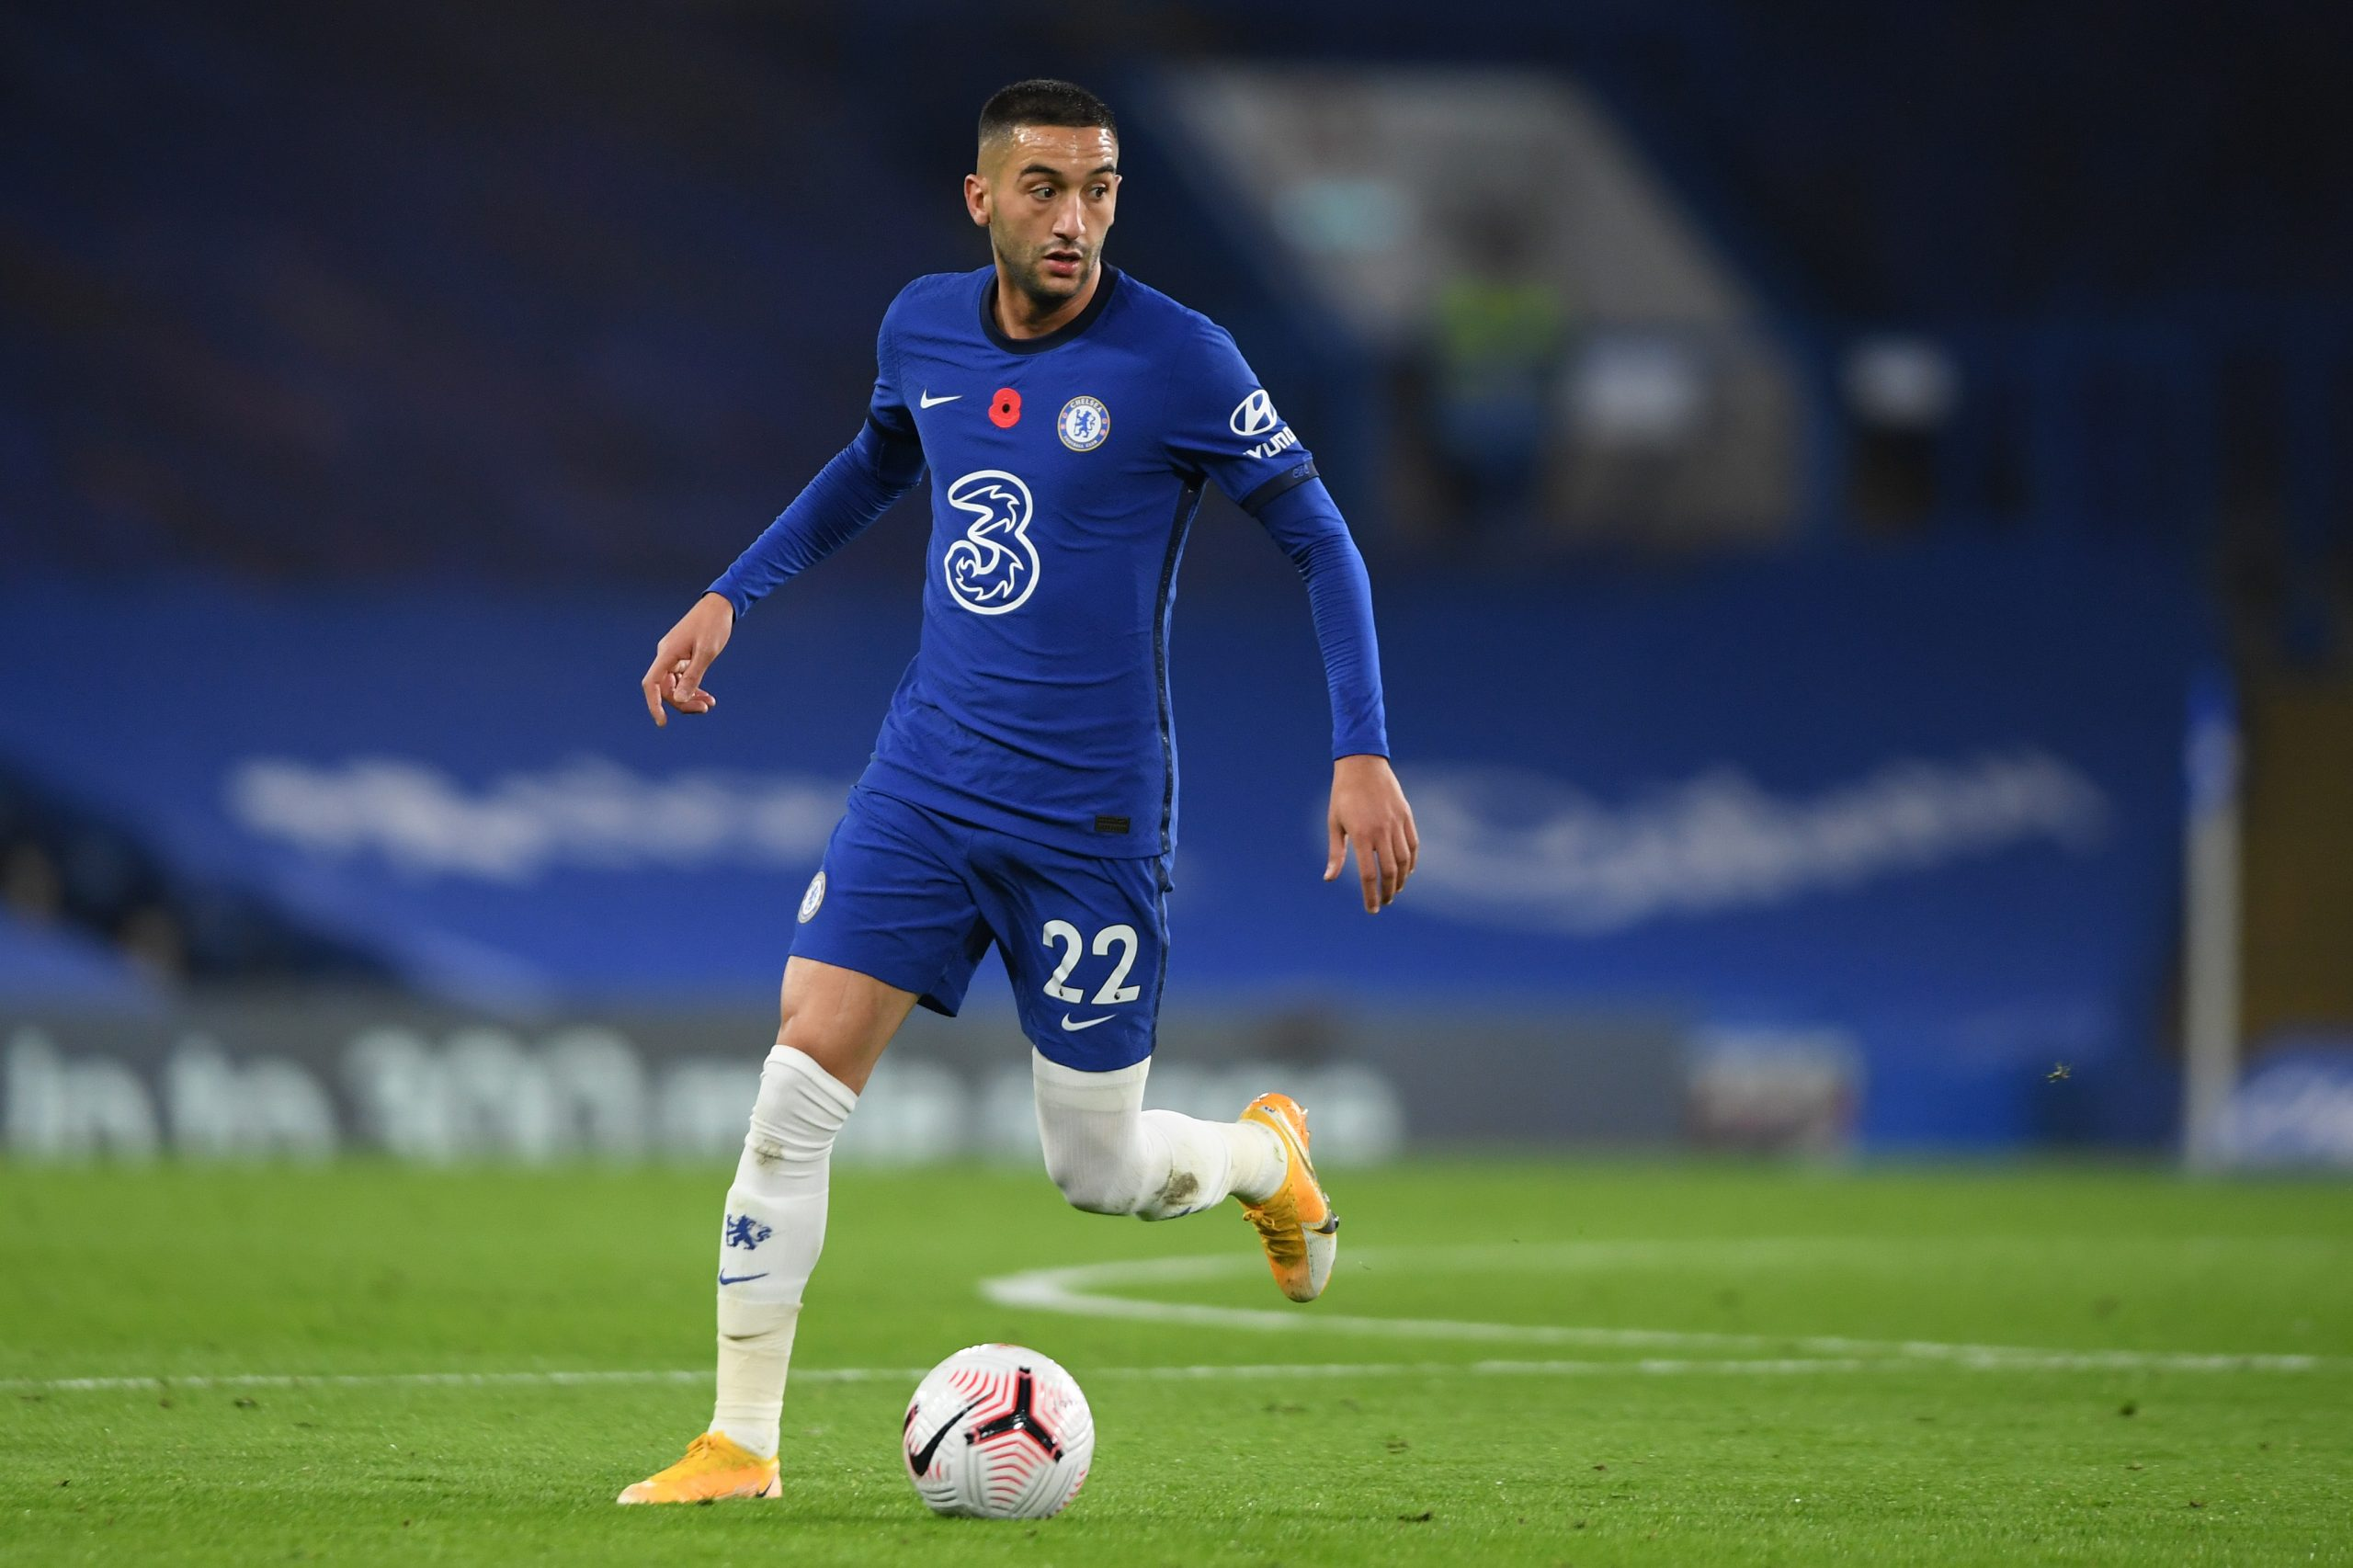 Hakim Ziyech expresses his admiration of ex-Chelsea winger Eden Hazard and says he has learnt a lot from the 'world-class' winger. (GETTY Images)